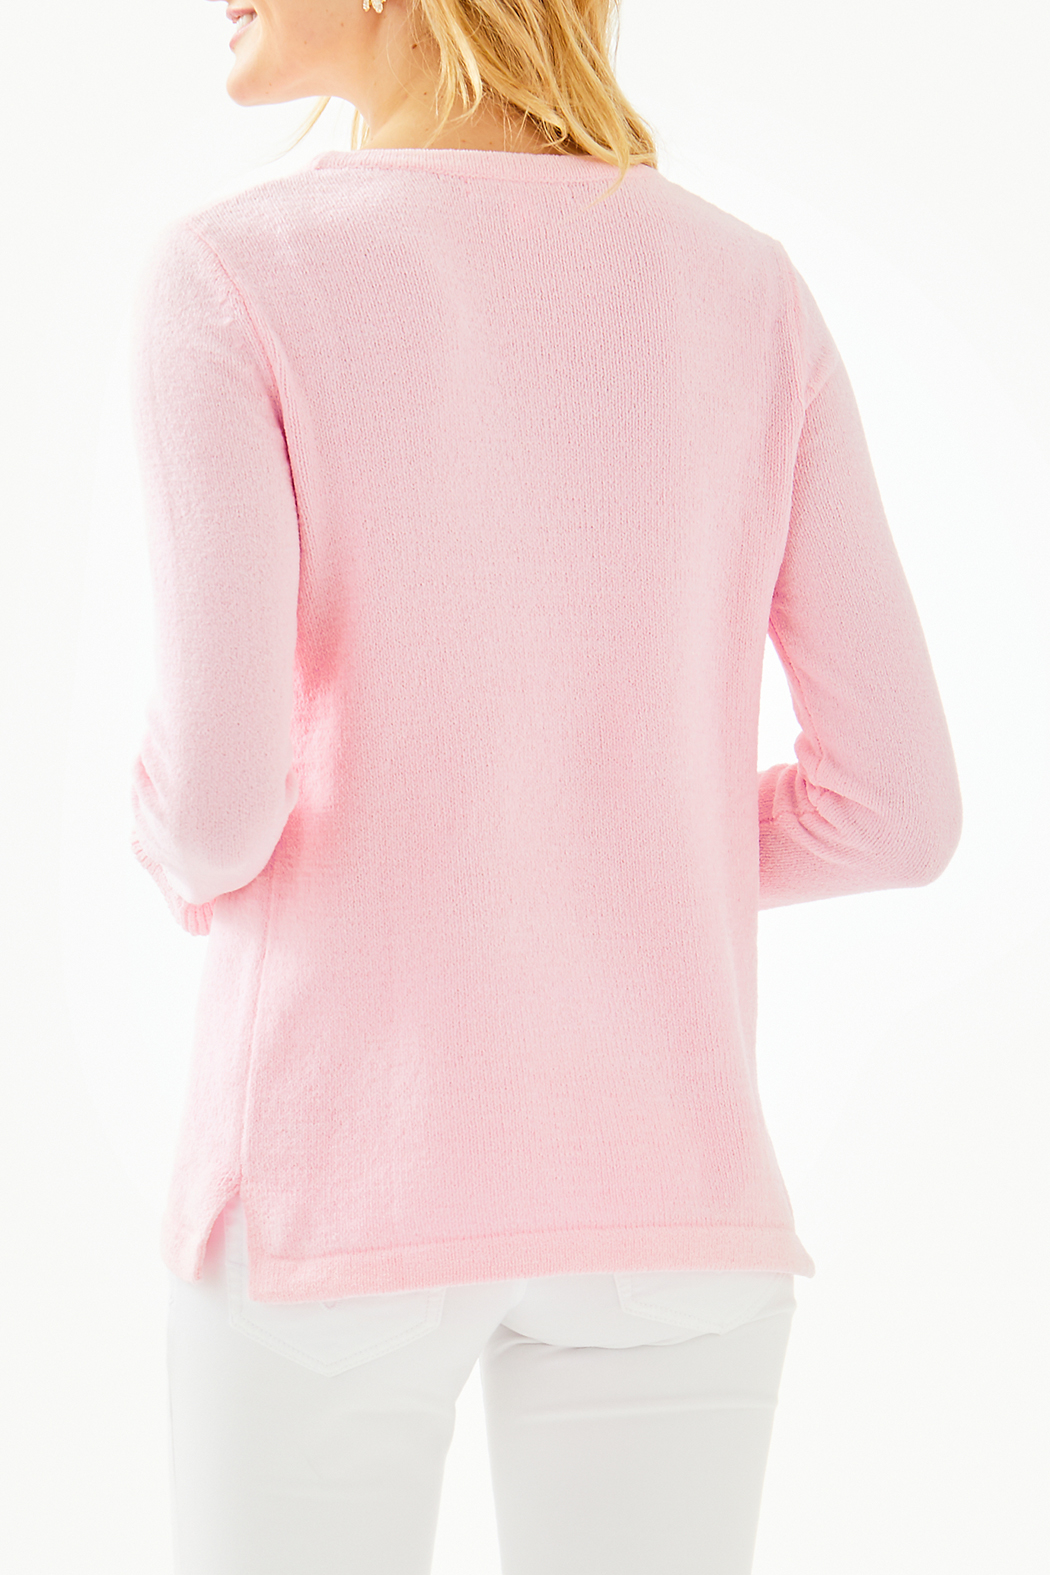 Lilly Pulitzer Calloway Chenille Sweater 004498 - Side Cropped Image